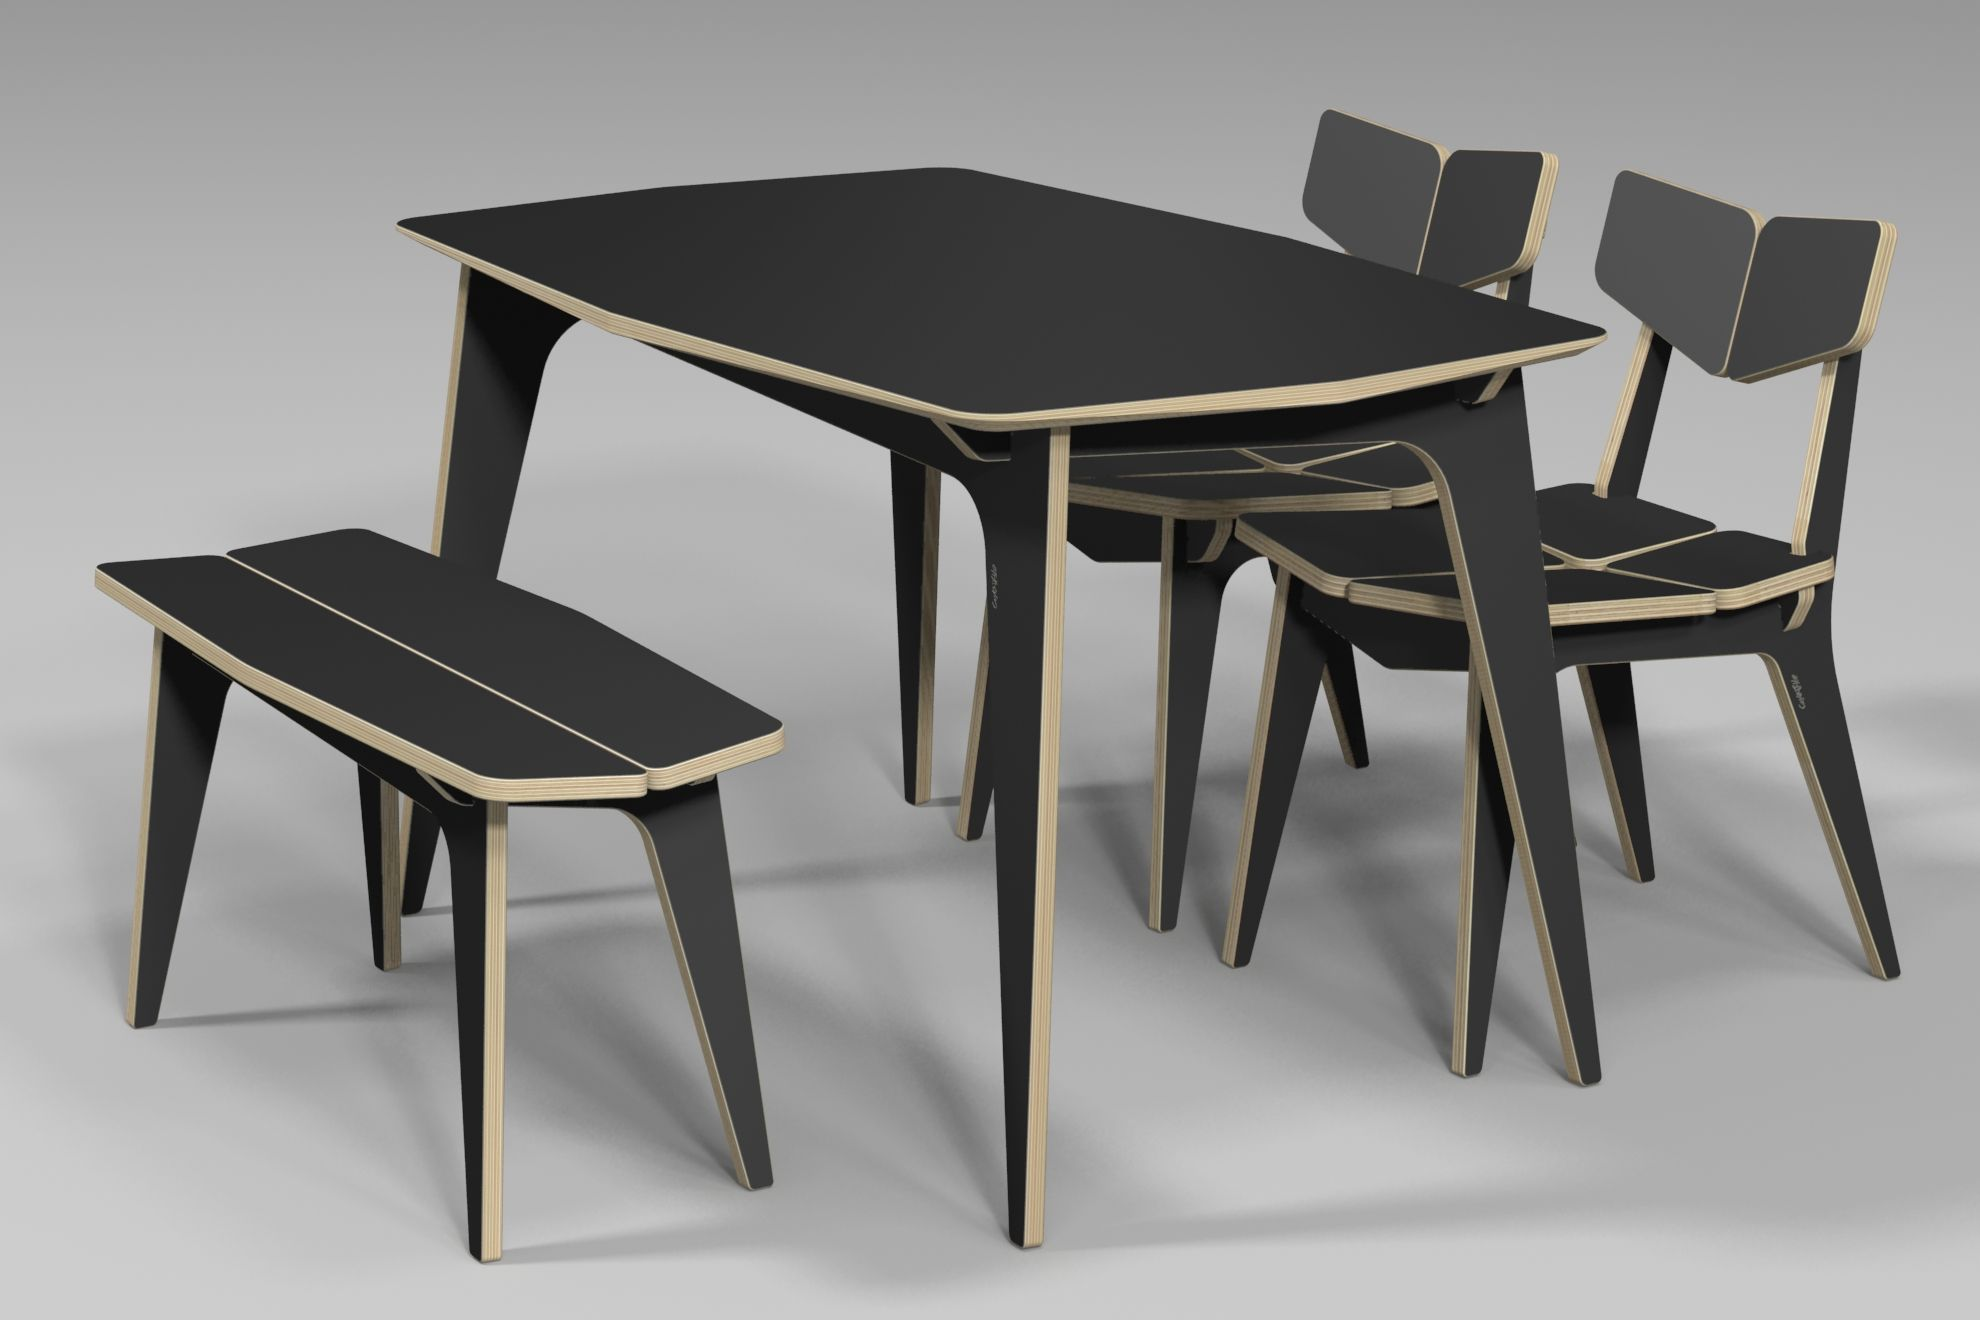 Tetra dining table cnc router 3d design plywood for Sedie design 3d